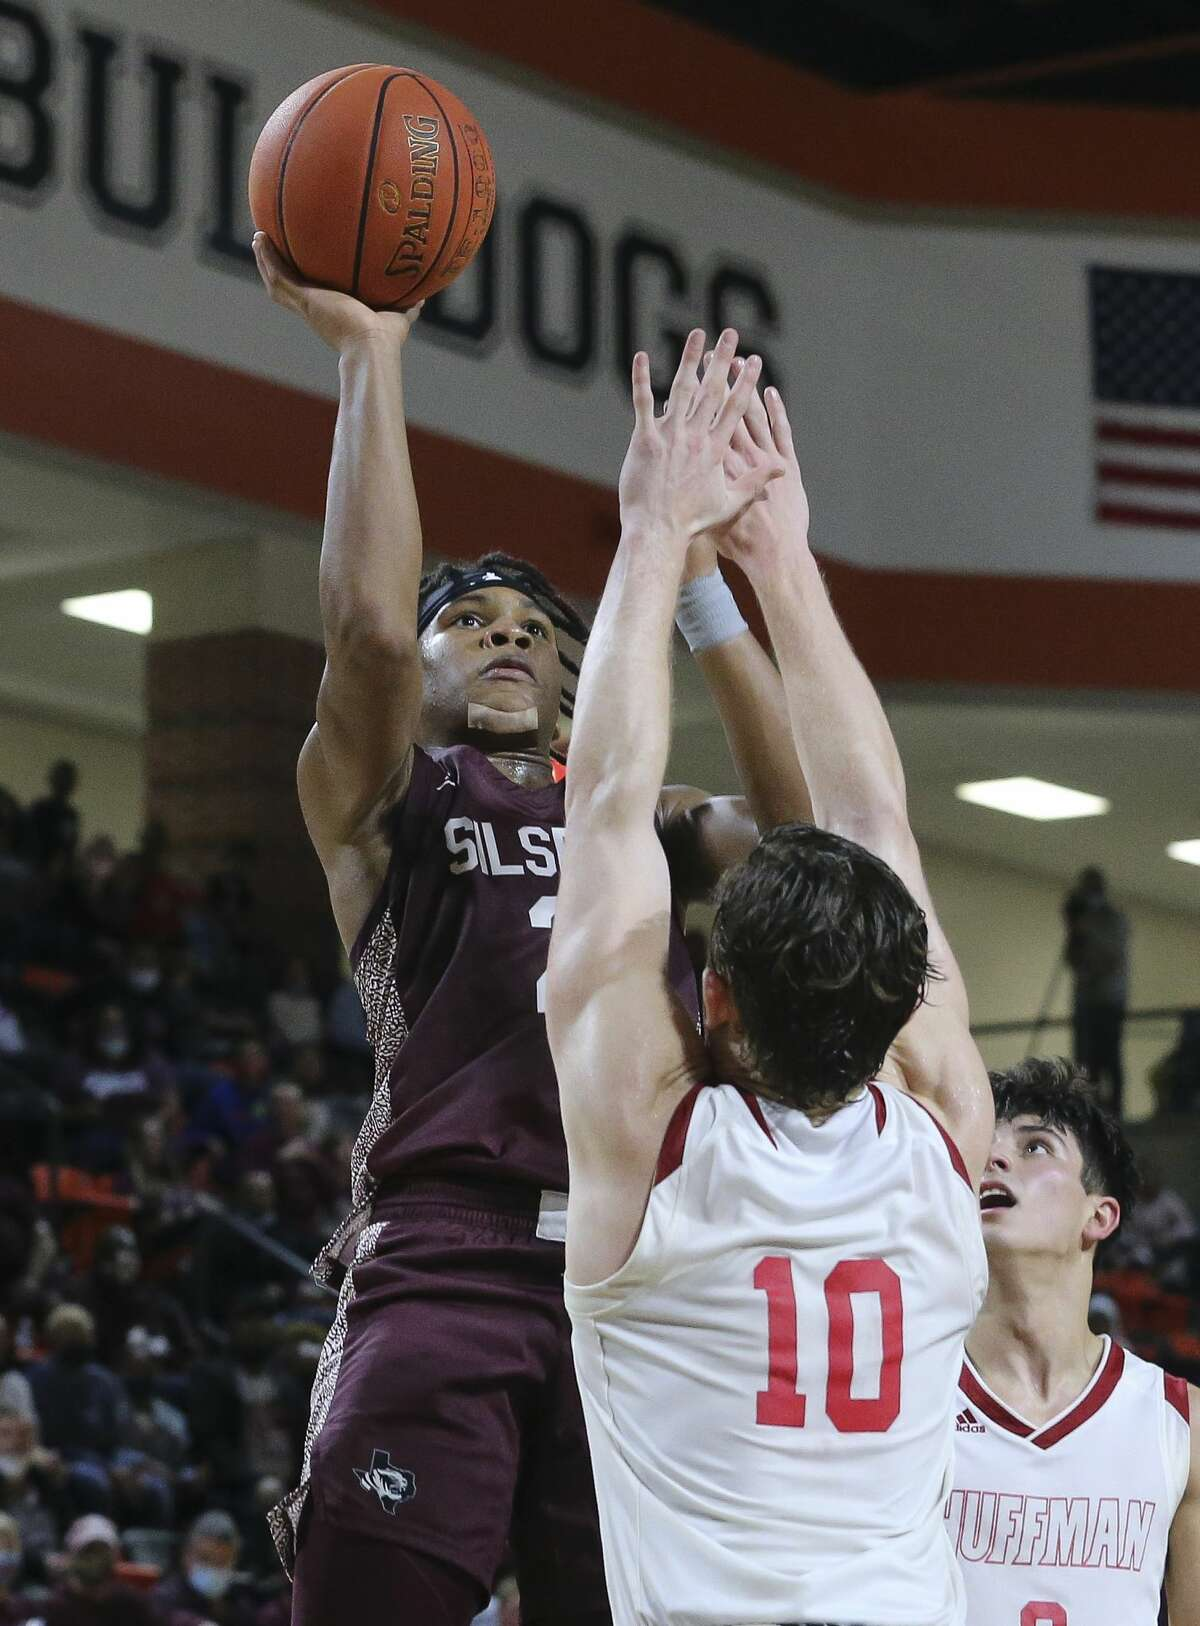 Silsbee Tigers Dre'lon Miller aims for the basket over Huffman Falcons Jacob Harvey during the second half of the 4A Region III championship game Friday, March 5, 2021, at La Porte High School in La Porte. Huffman Falcons defeated Silsbee Tigers 62-56.